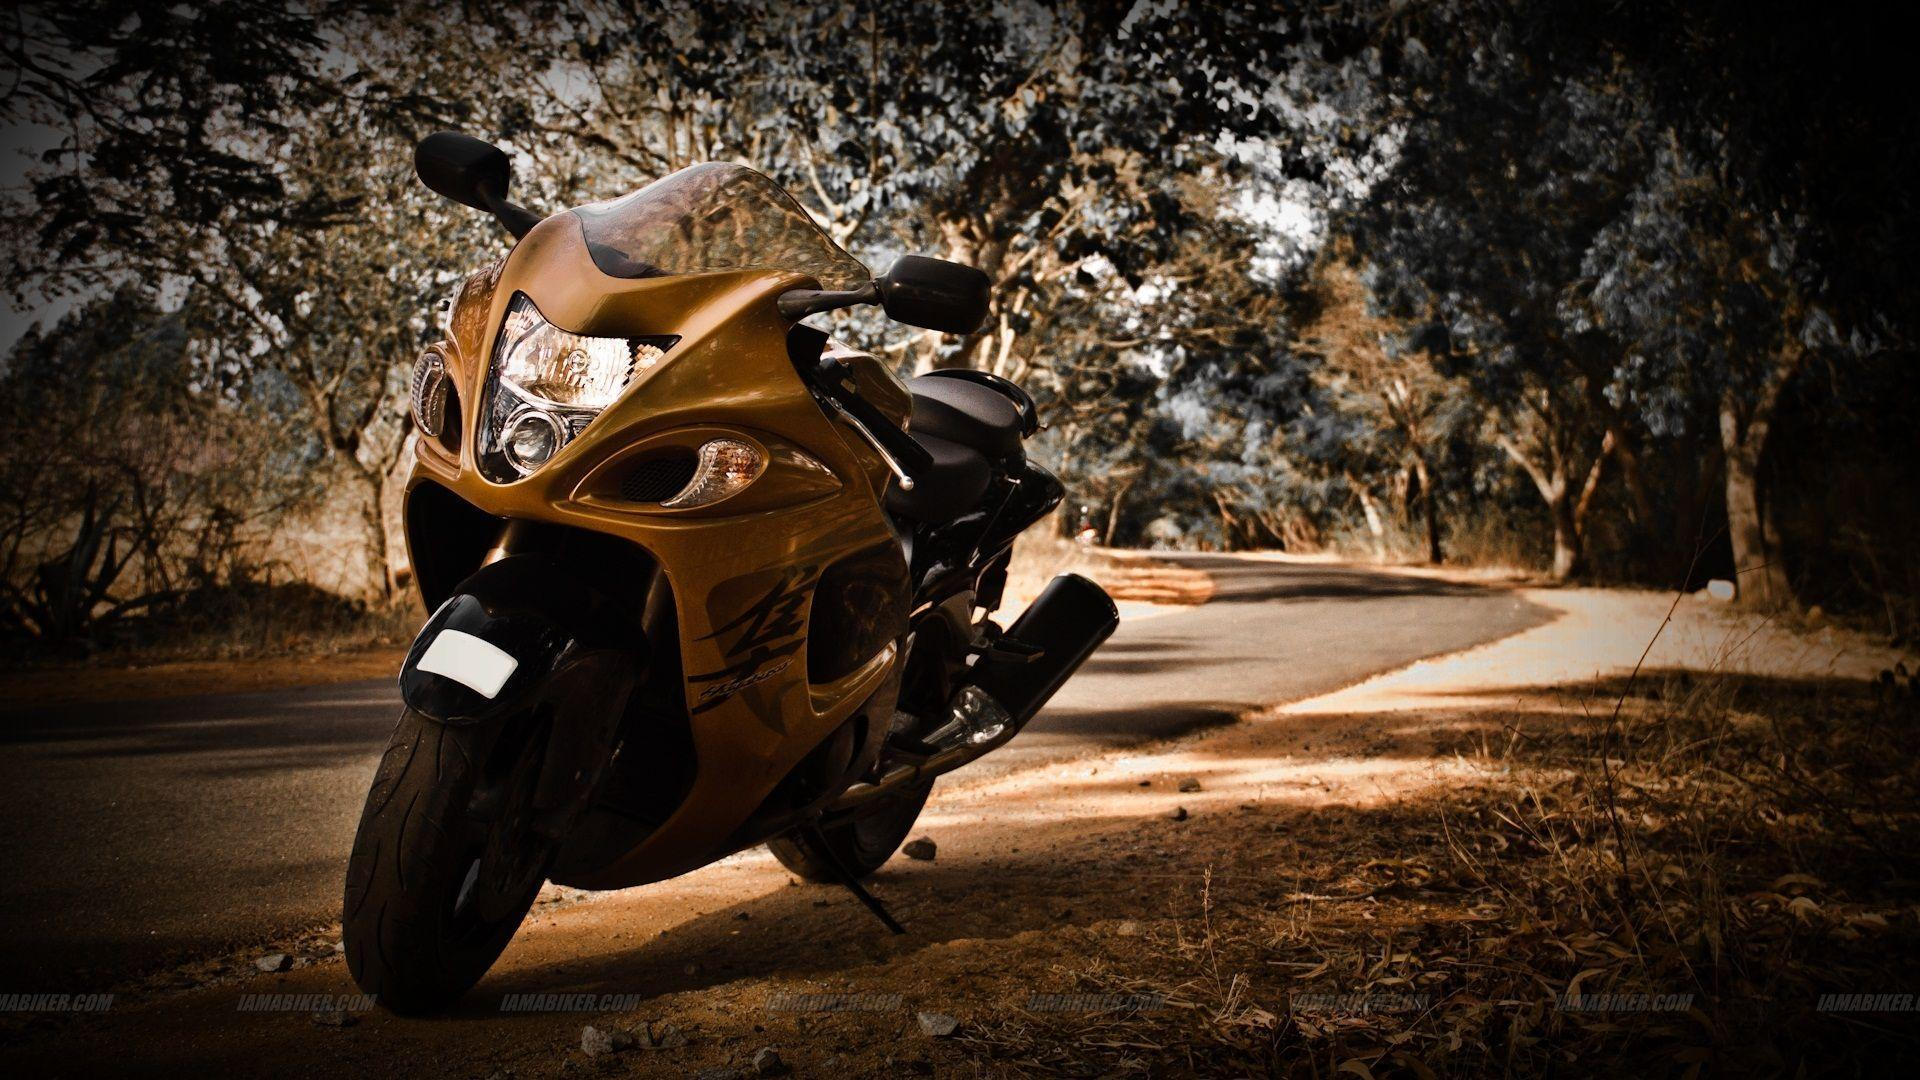 Suzuki Hayabusa Wallpapers - Wallpaper Cave